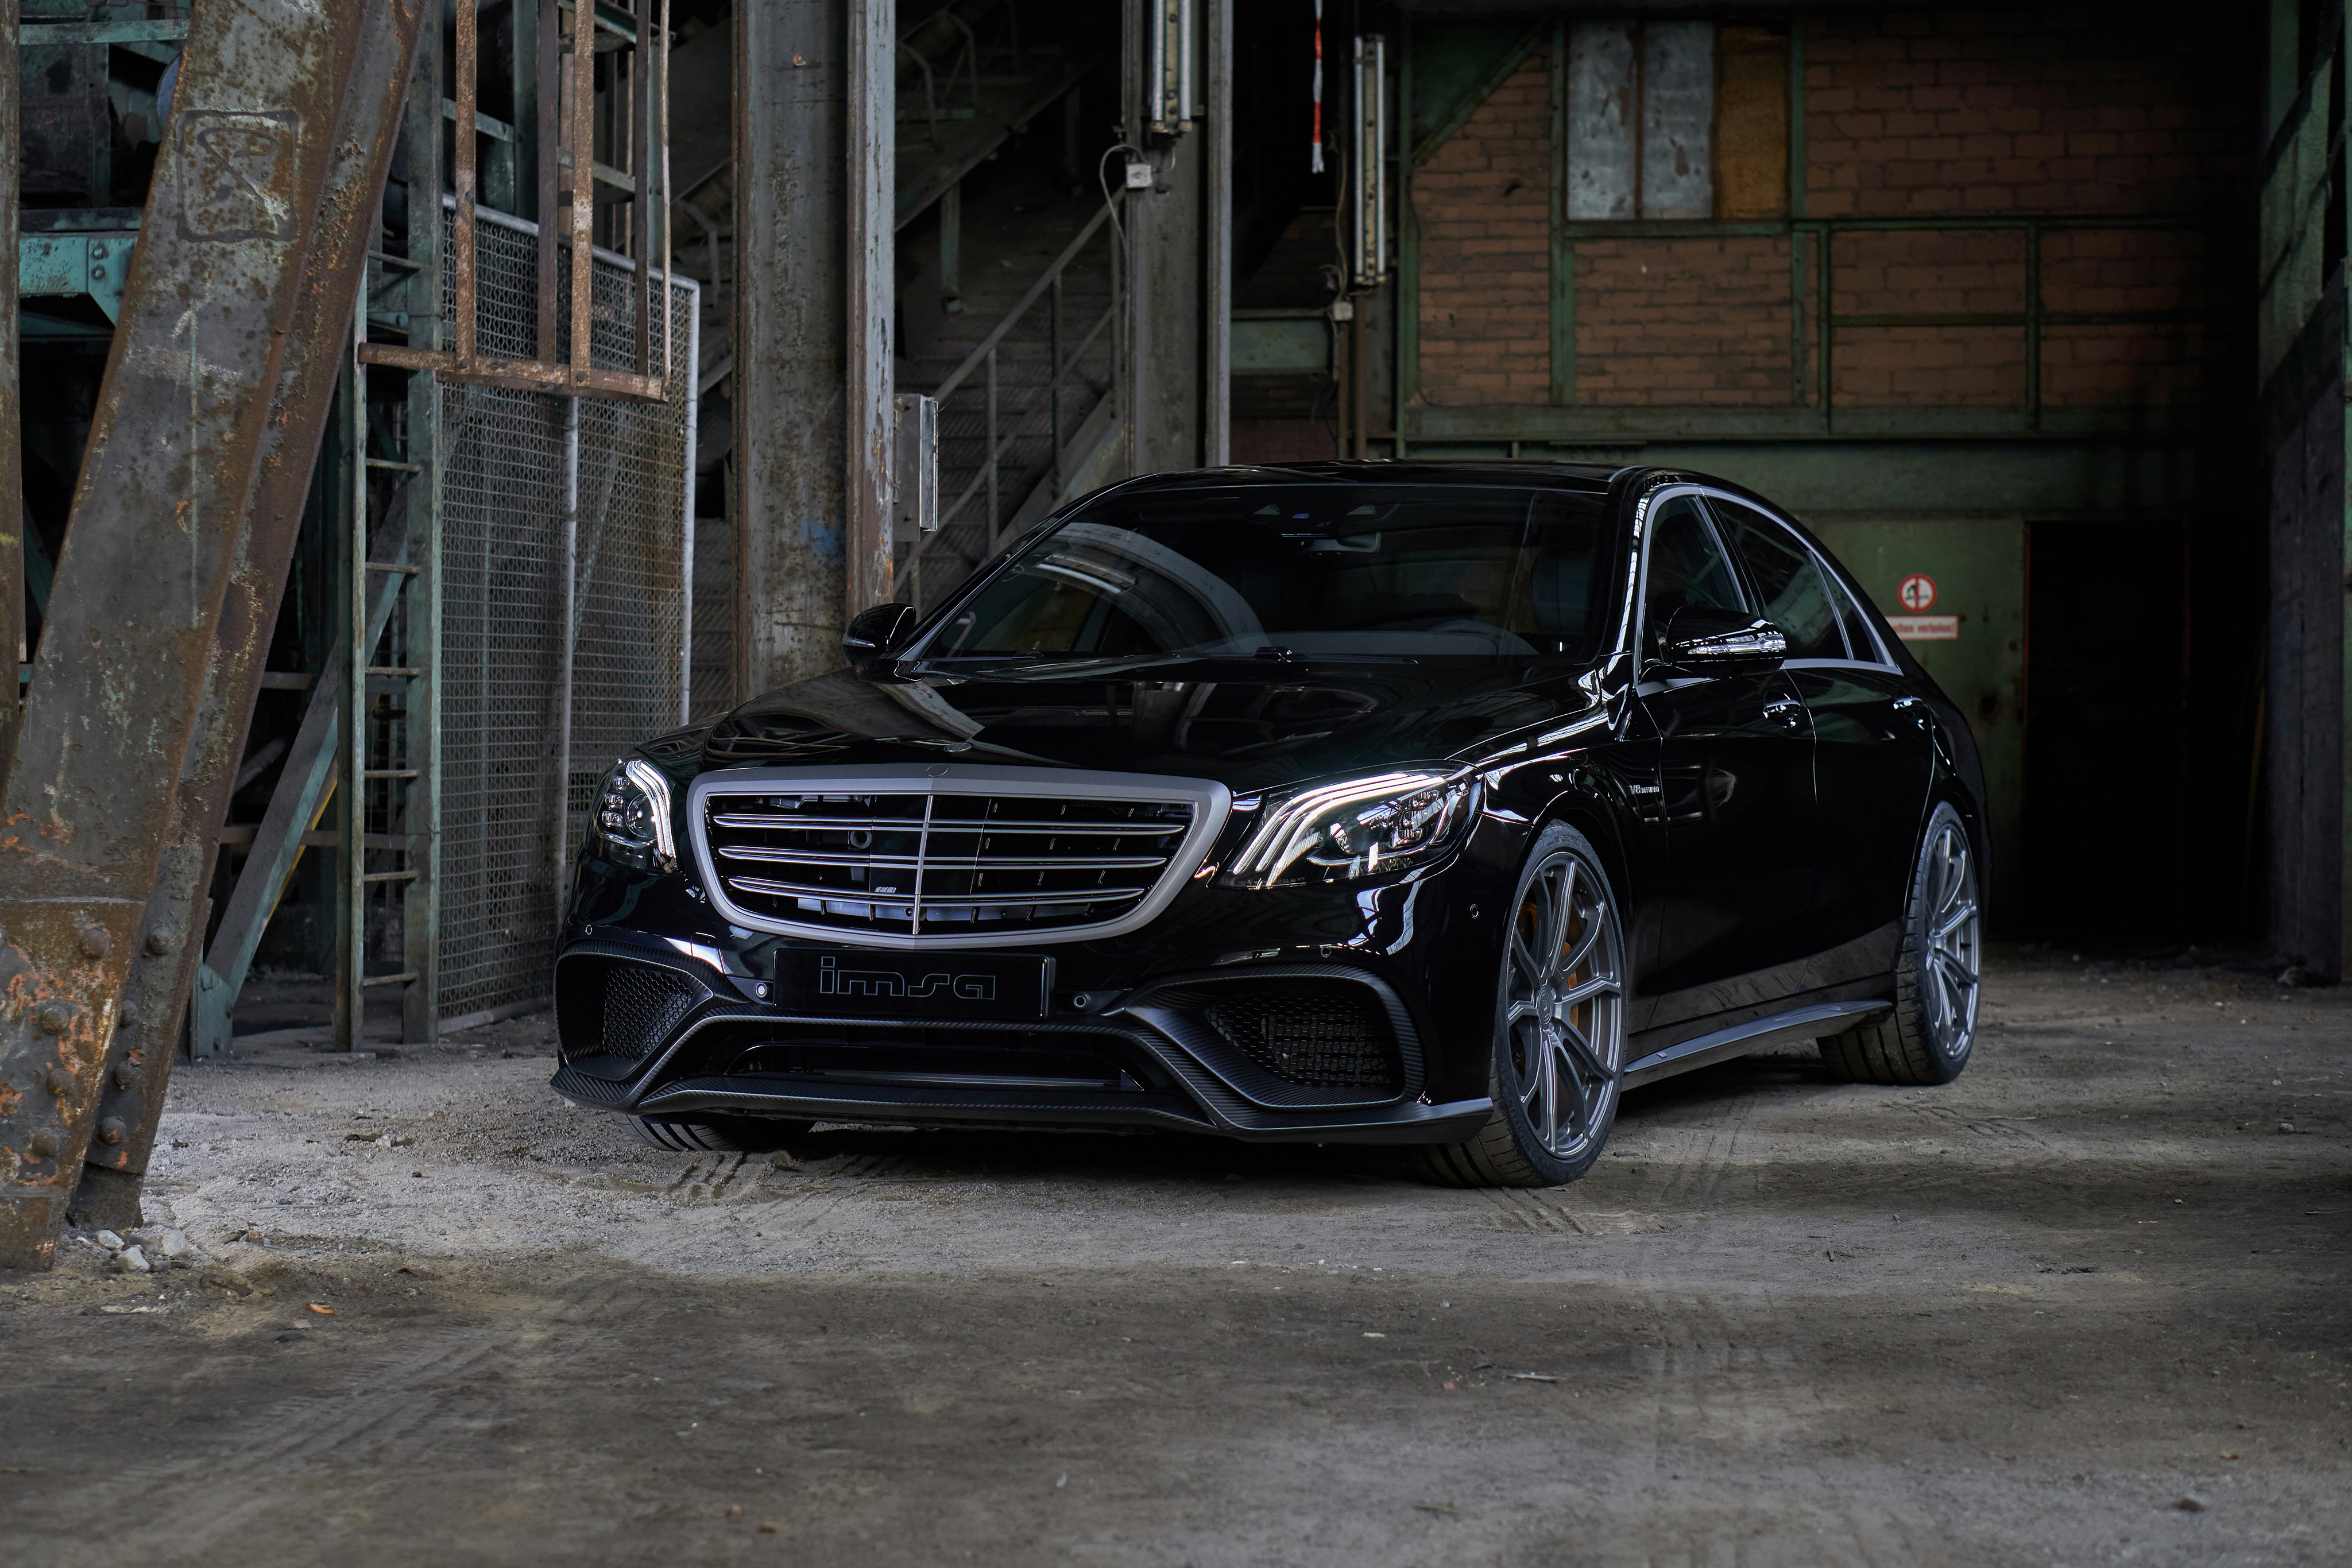 Mercedes Amg W222 S63 On 22 Hre Rs102m Wheels Benztuning